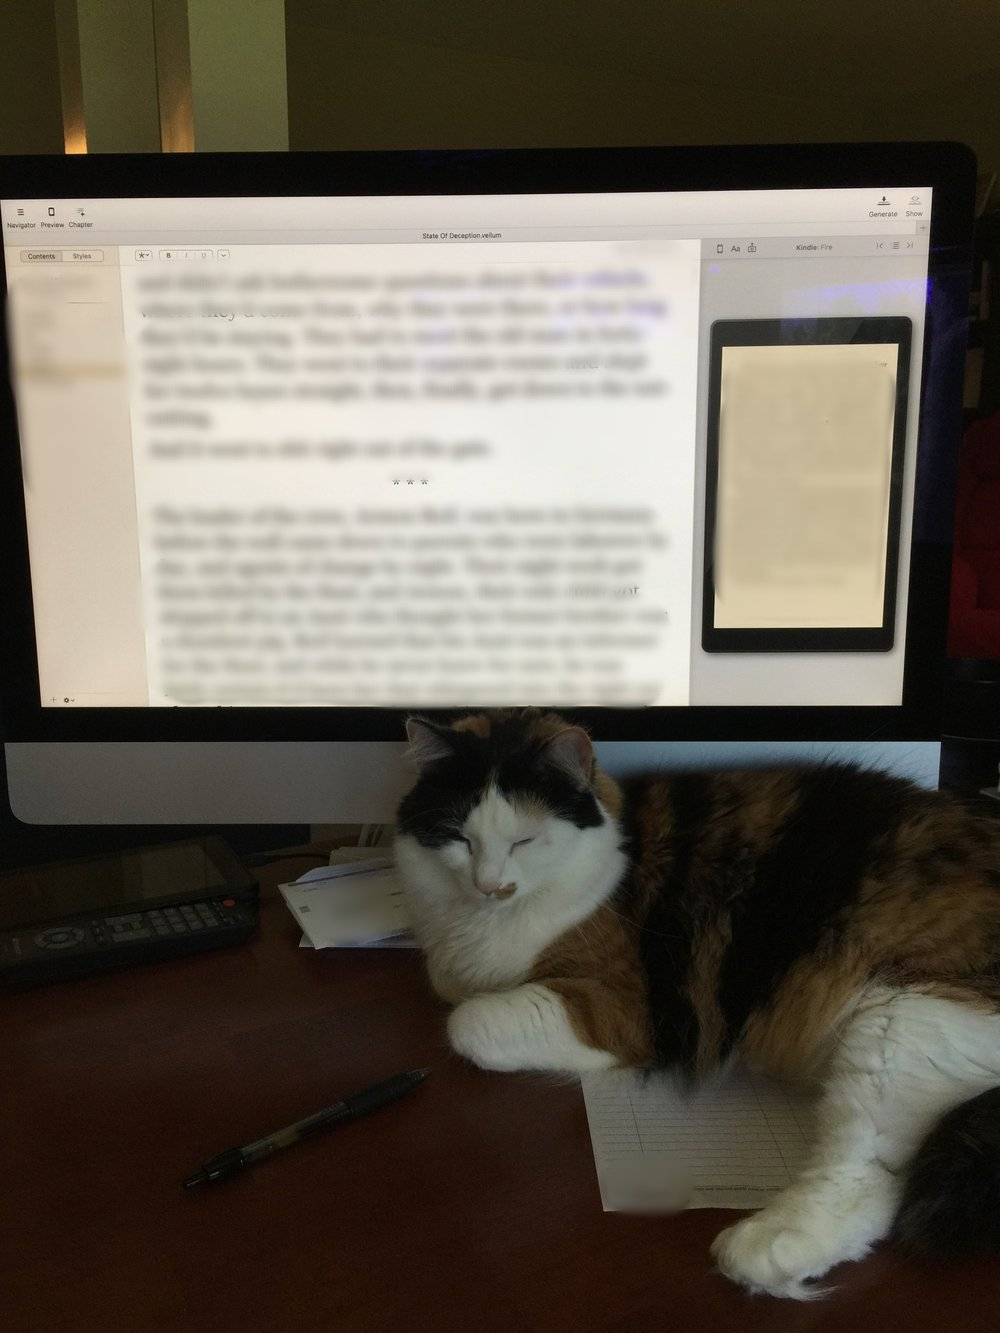 My writing buddy, Lucy. (She made me blur the screen) I wanted to let everyone have a peek, but she said, nope...gotta wait!